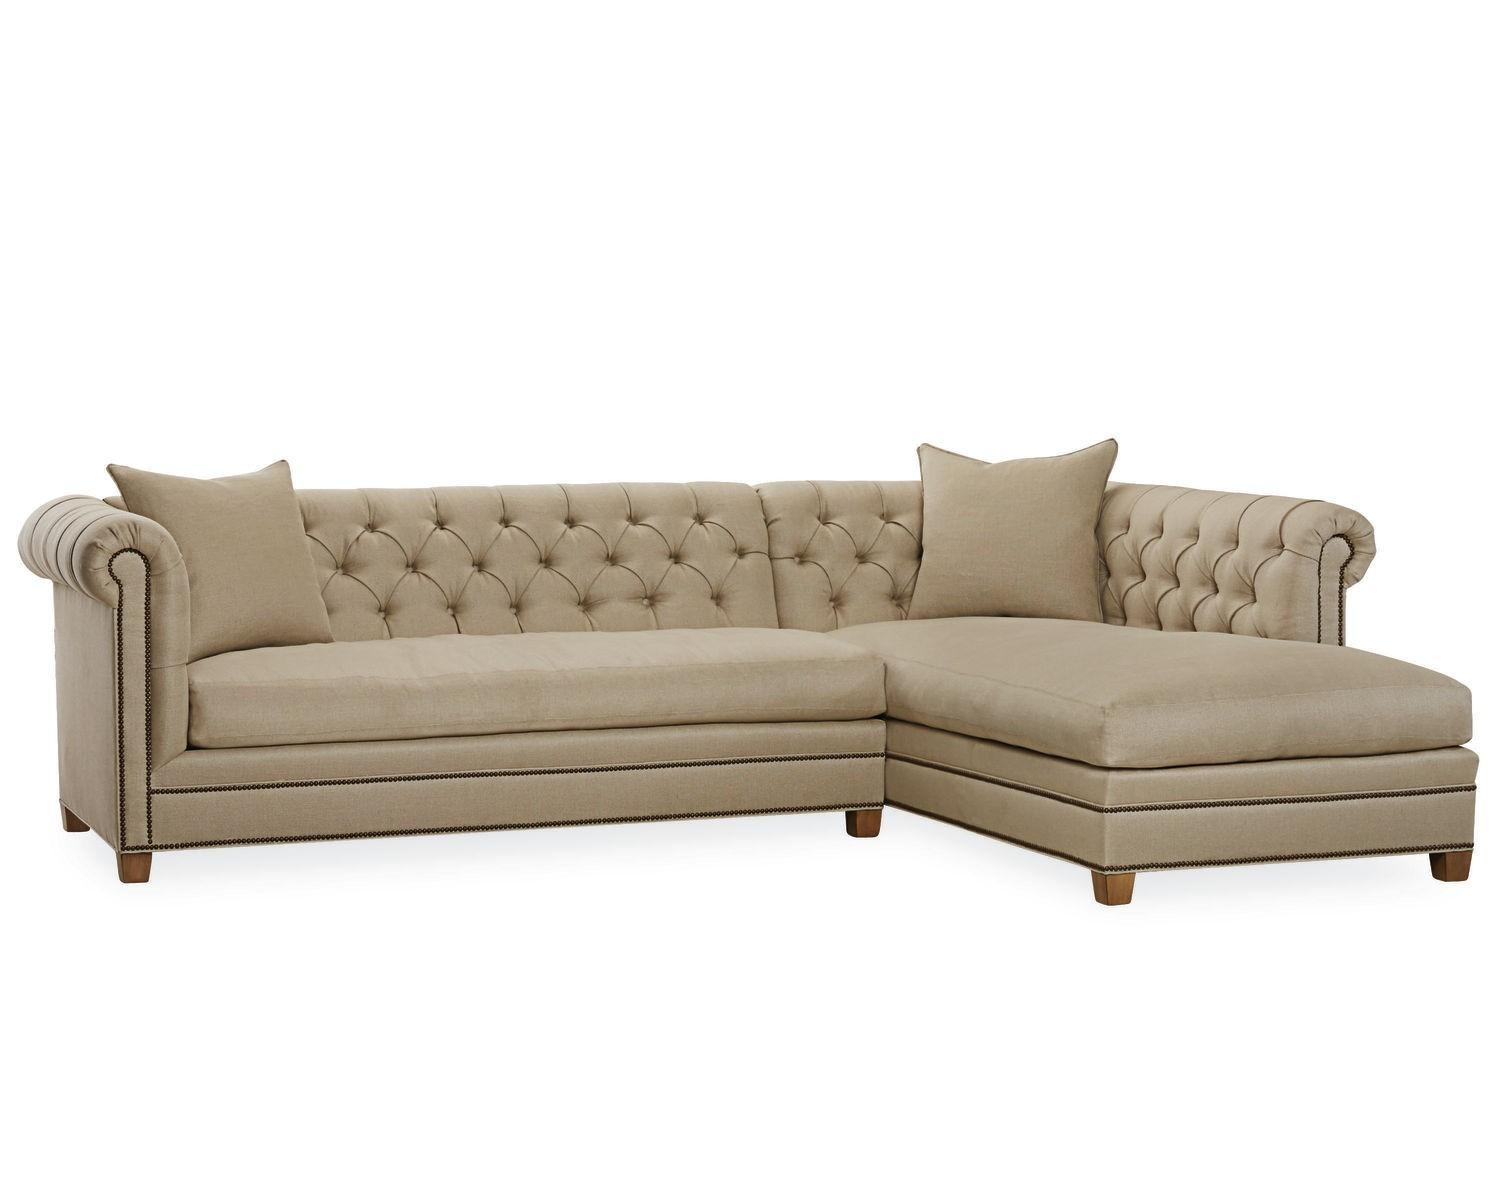 American Furniture | Cambridge Sectional | Lee Industries Intended For Lee Industries Sectional Sofa (Image 1 of 20)